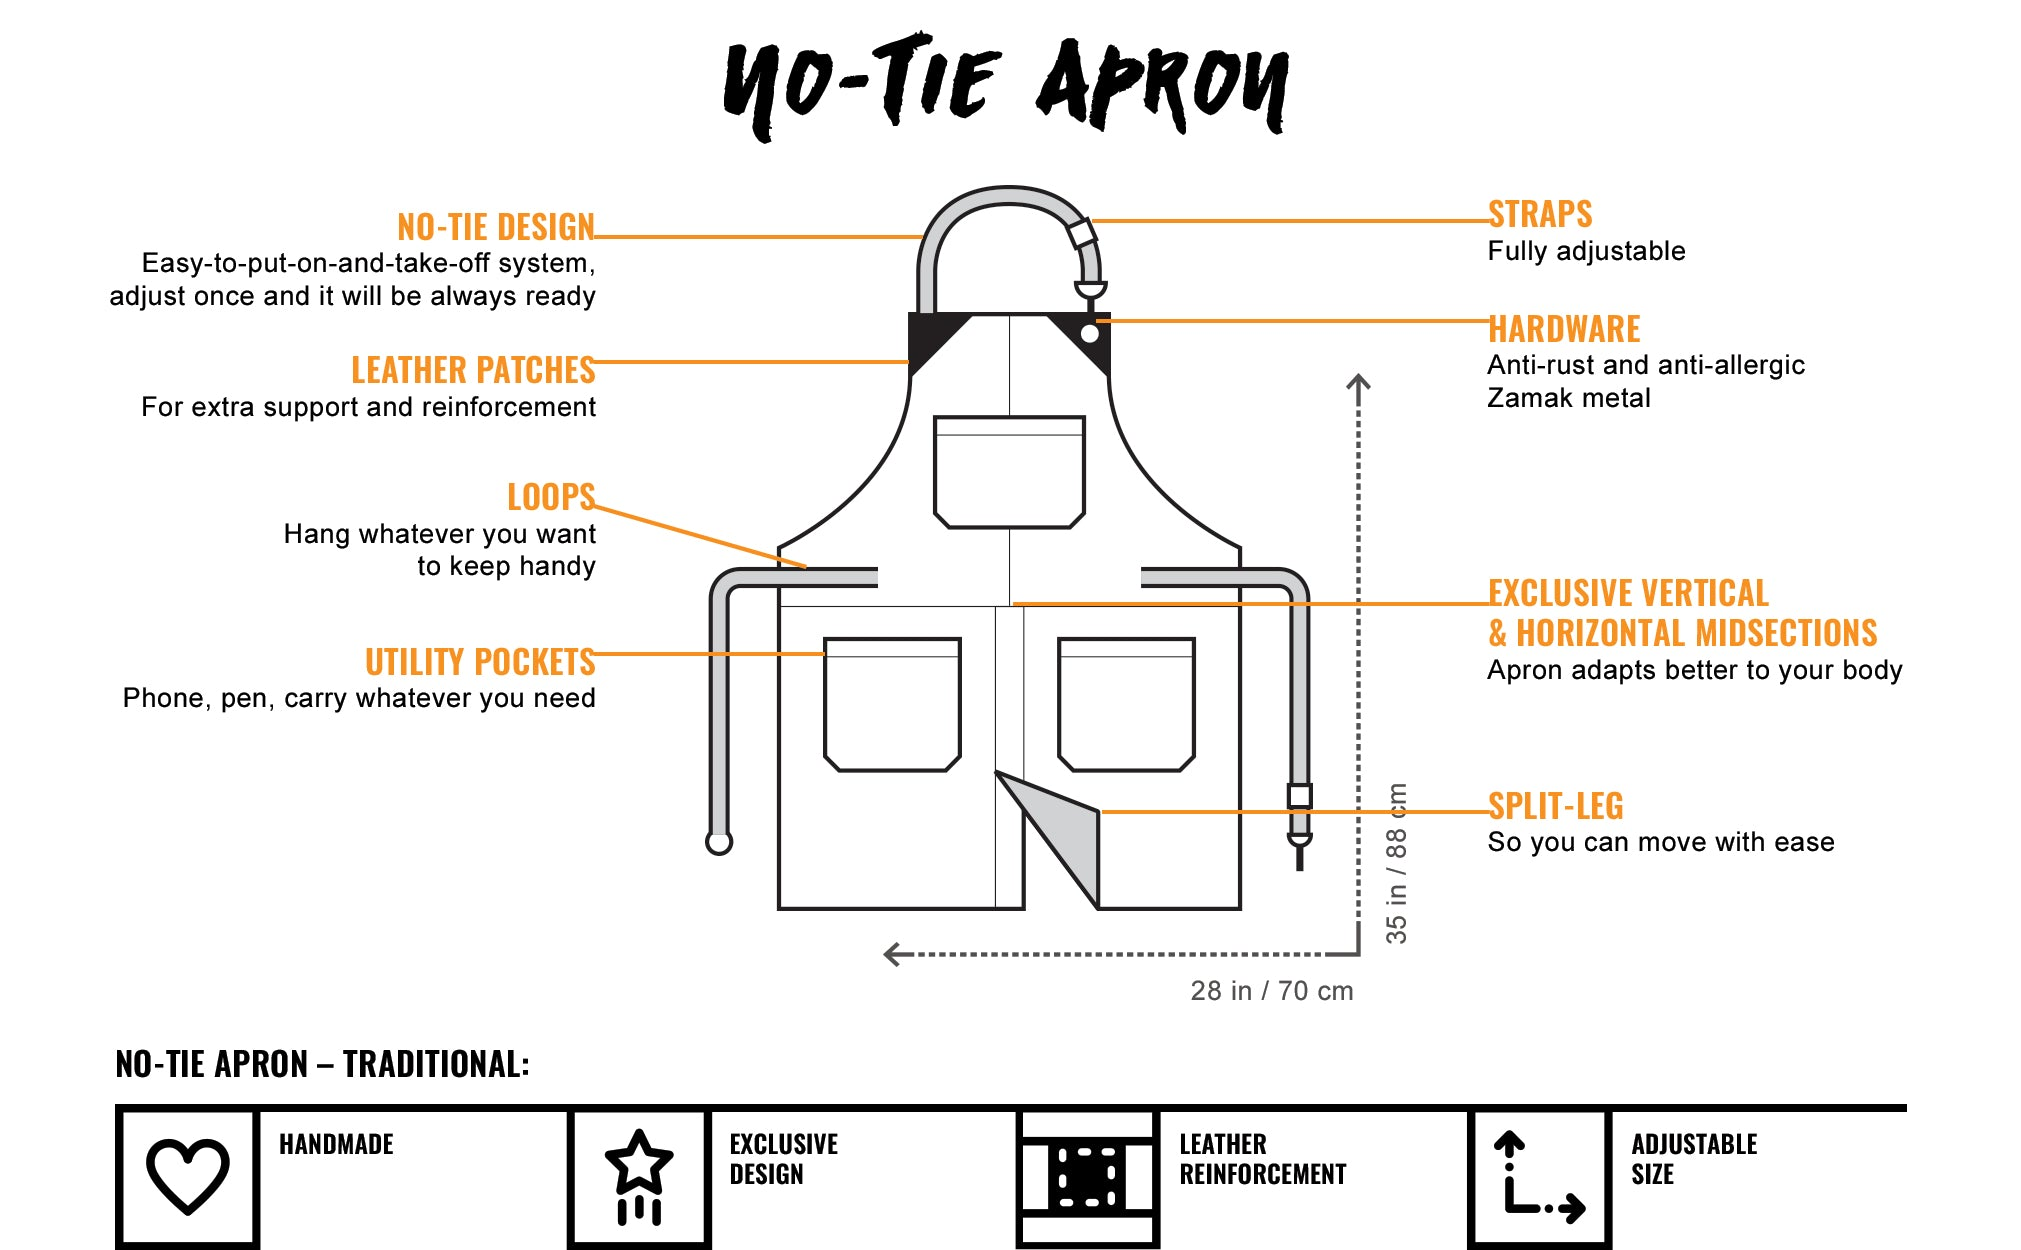 Under NY Sky No-Tie Twill Apron - Features Chart